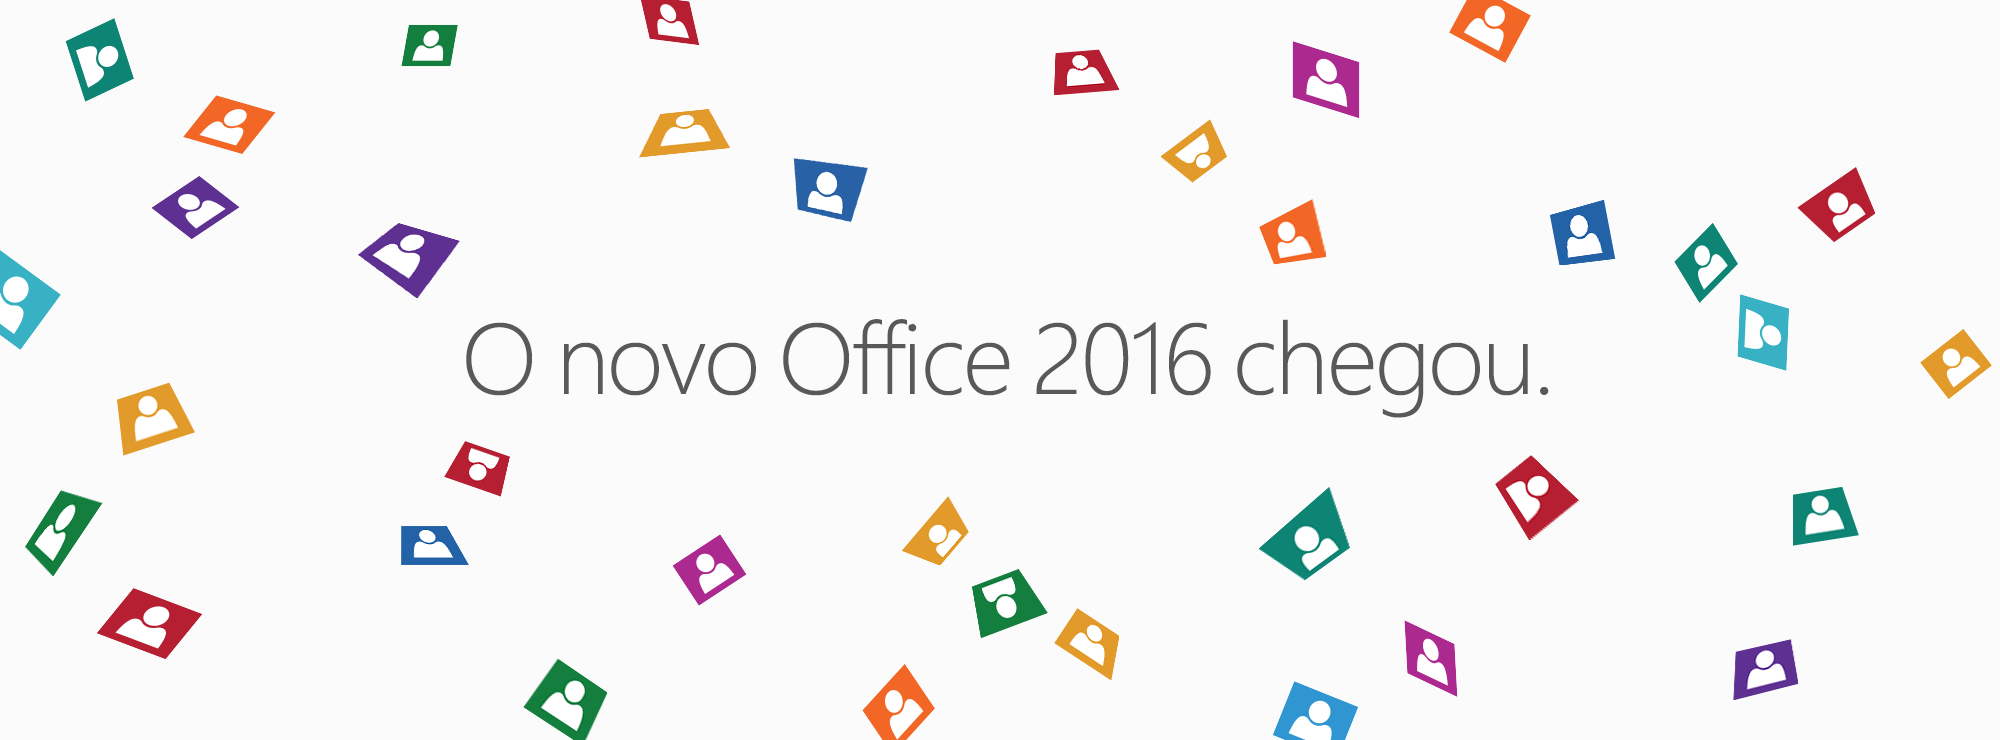 FB_OfficeSocial_Office2016_Consumer_Coverphoto_Confetti